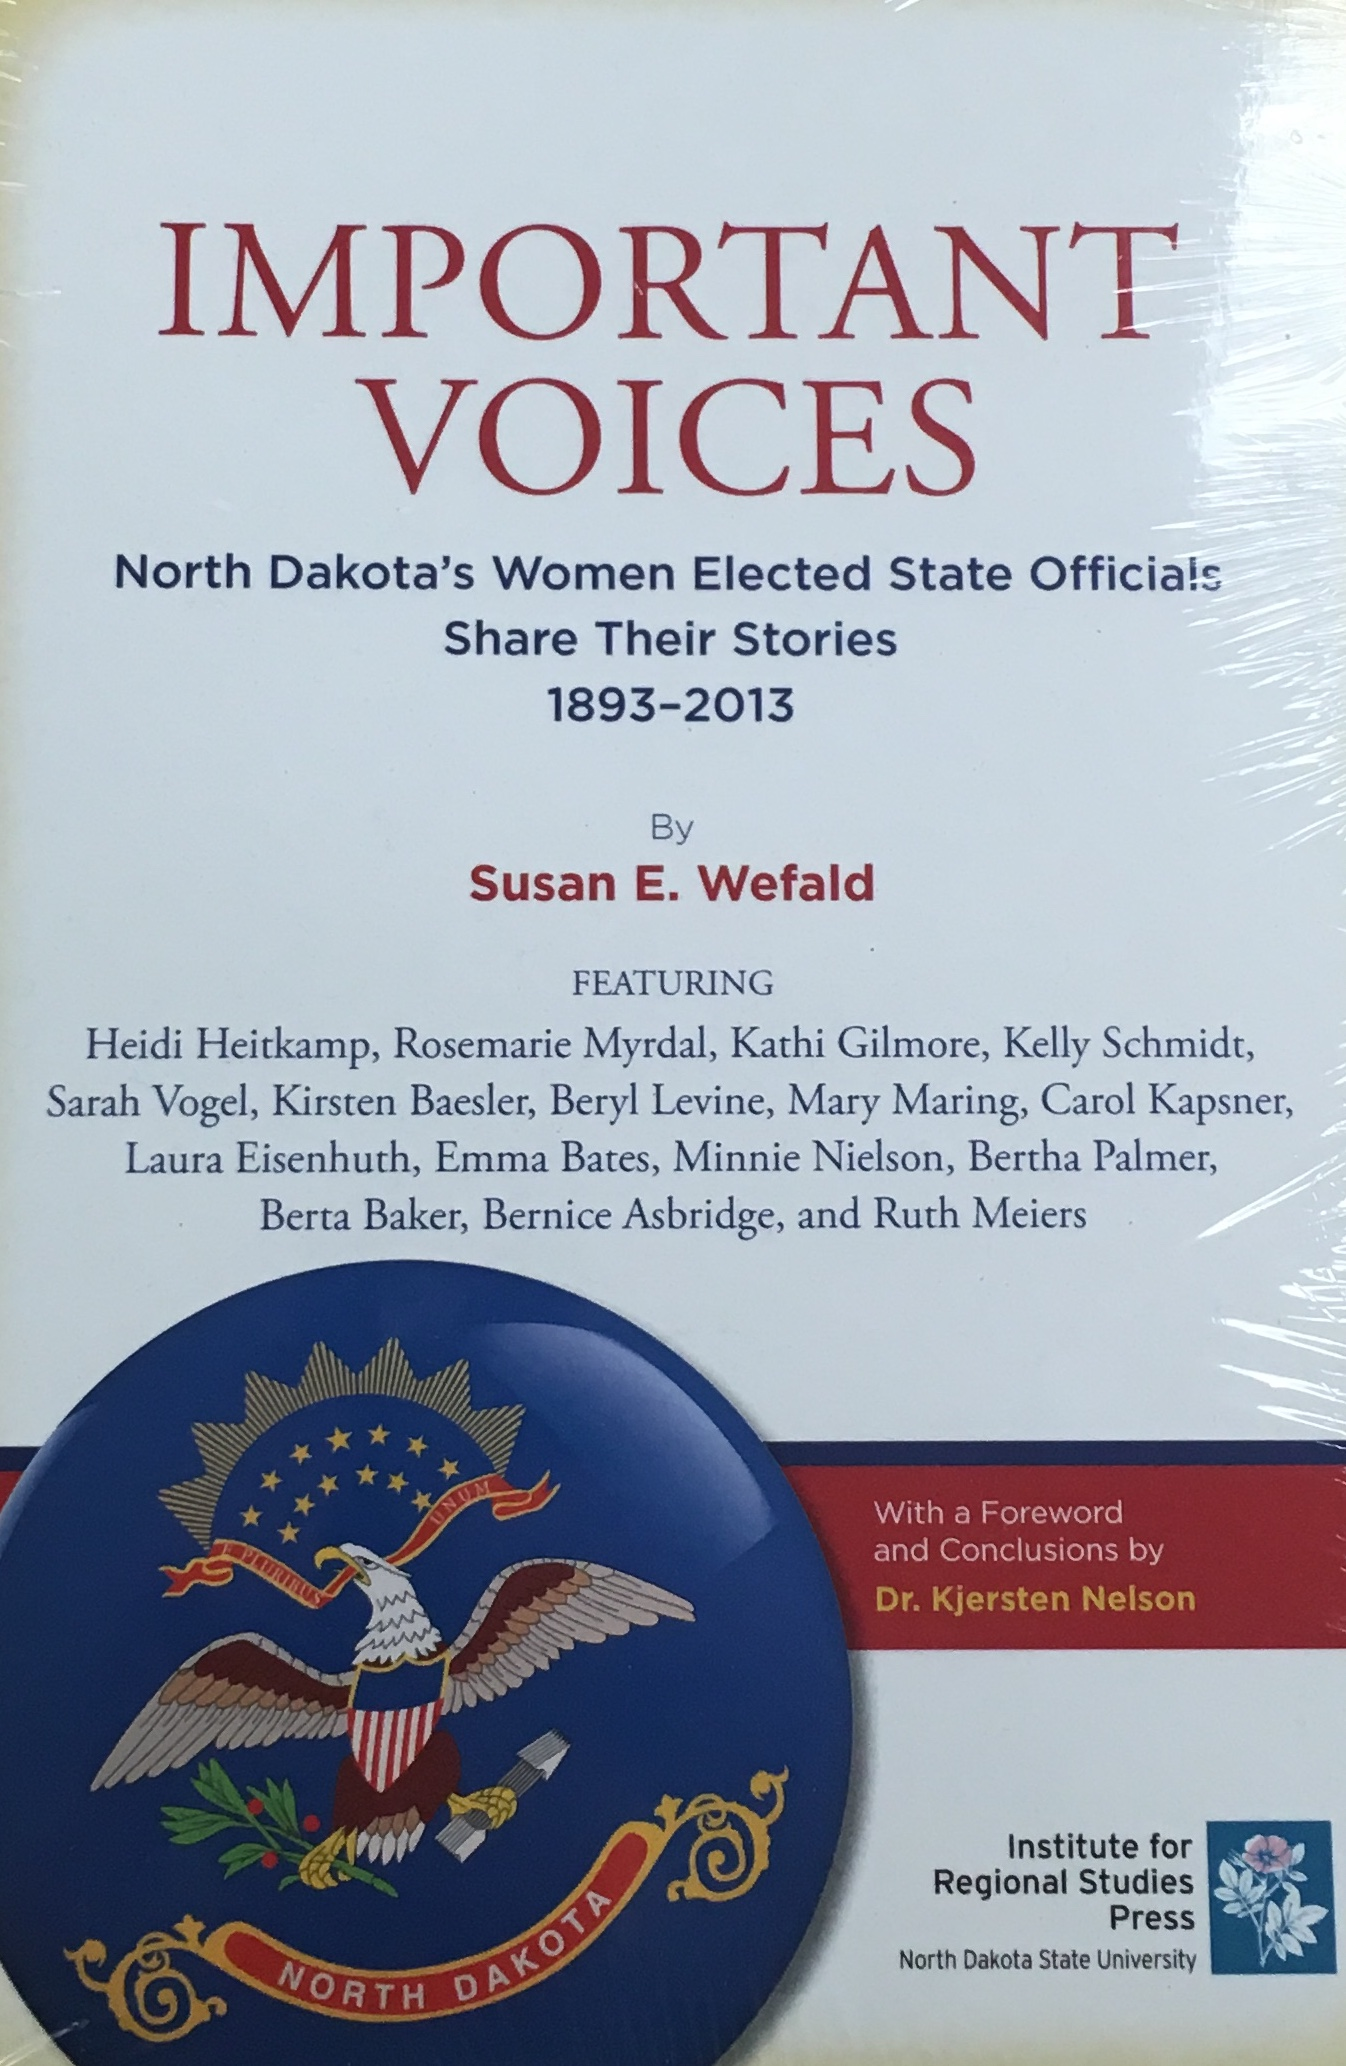 Important Voices - North Dakota's Women Elected State Officials Share Their Stories 1893-2013